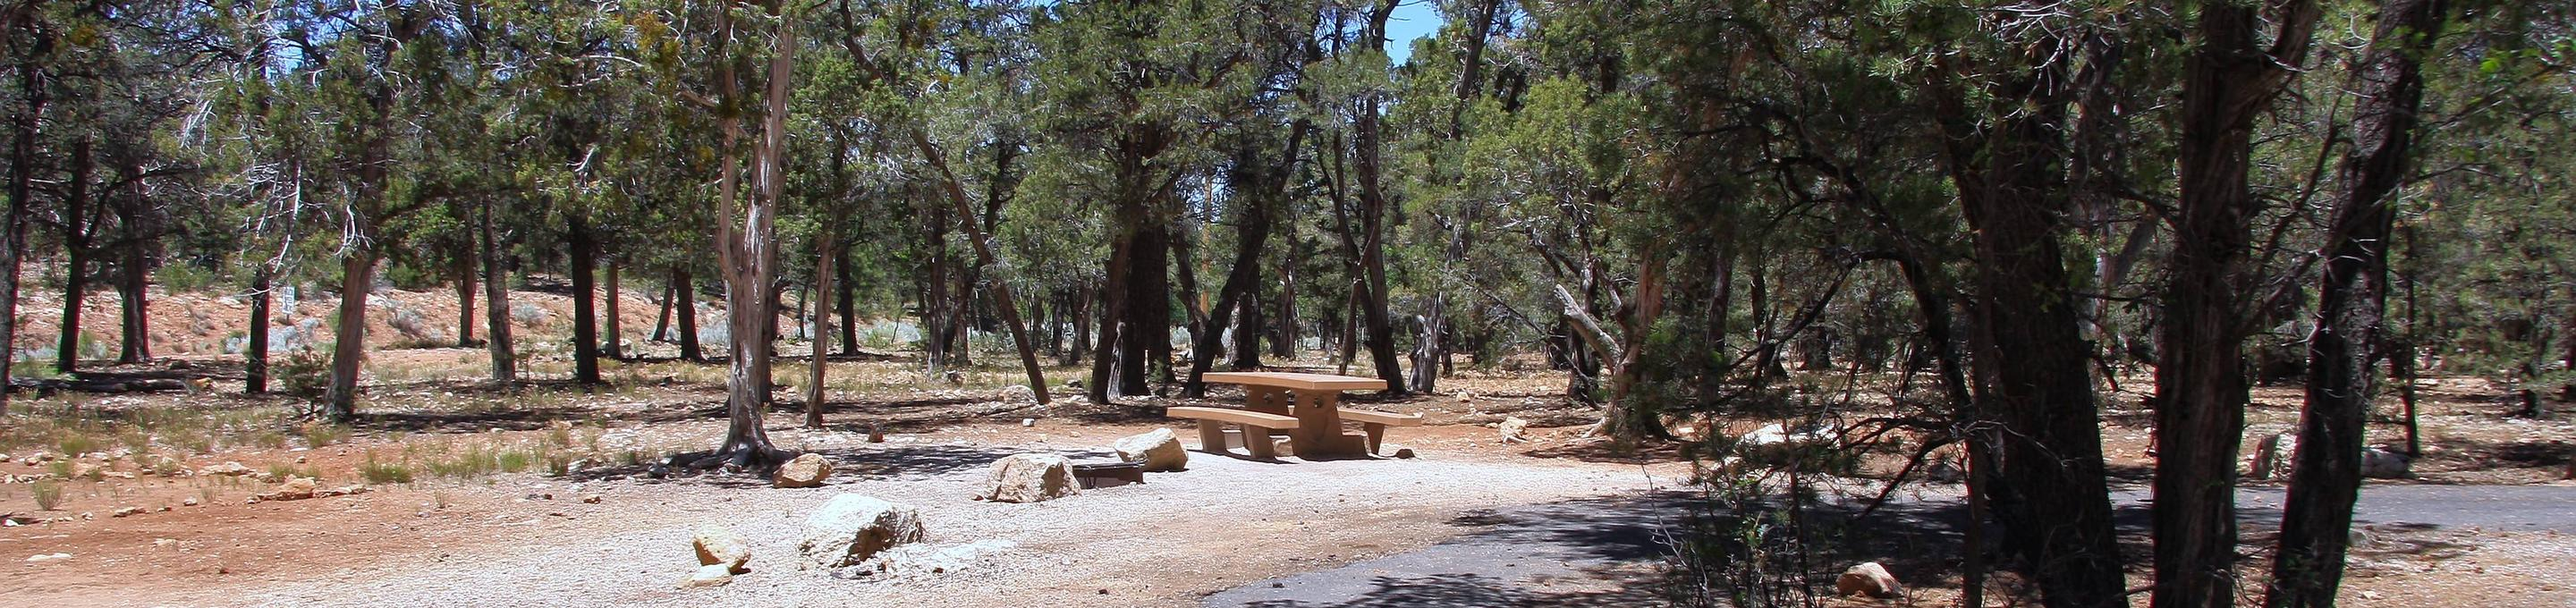 Picnic table, fire pit, and parking spot, Mather CampgroundPicnic table, fire pit, and parking spot for Fir Loop 77, Mather Campground